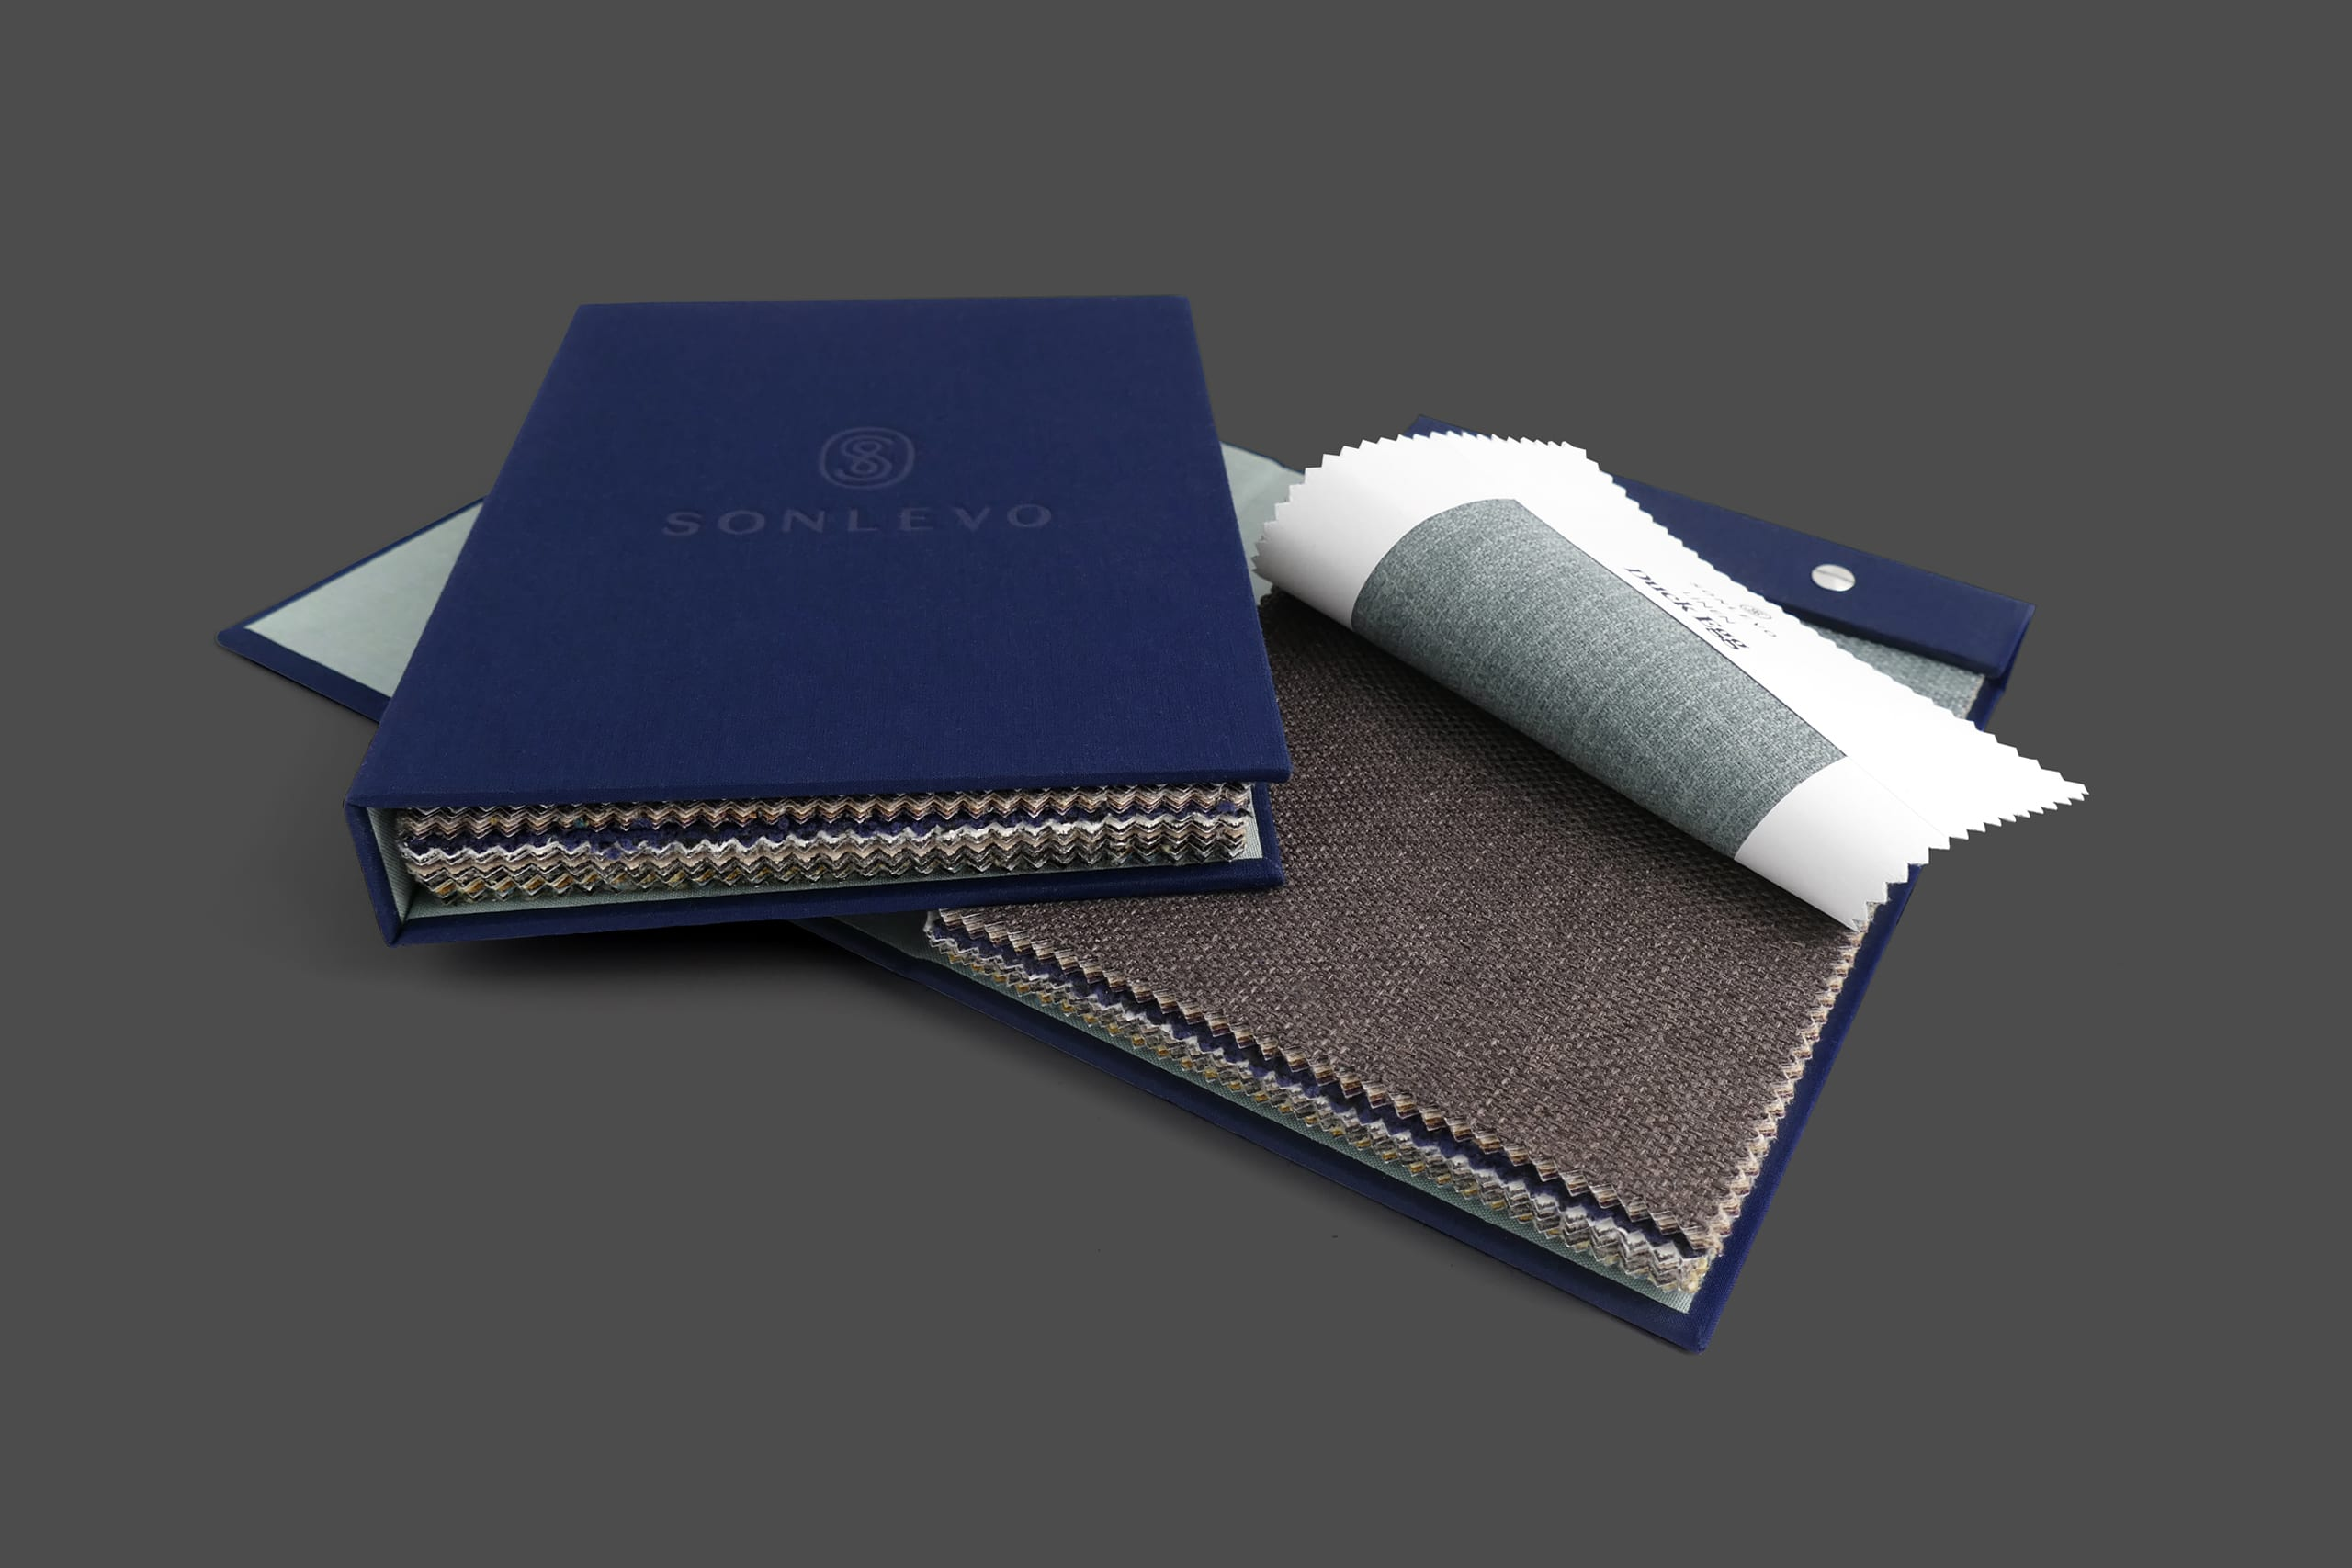 Bespoke fabric swatch book for Sonlevo